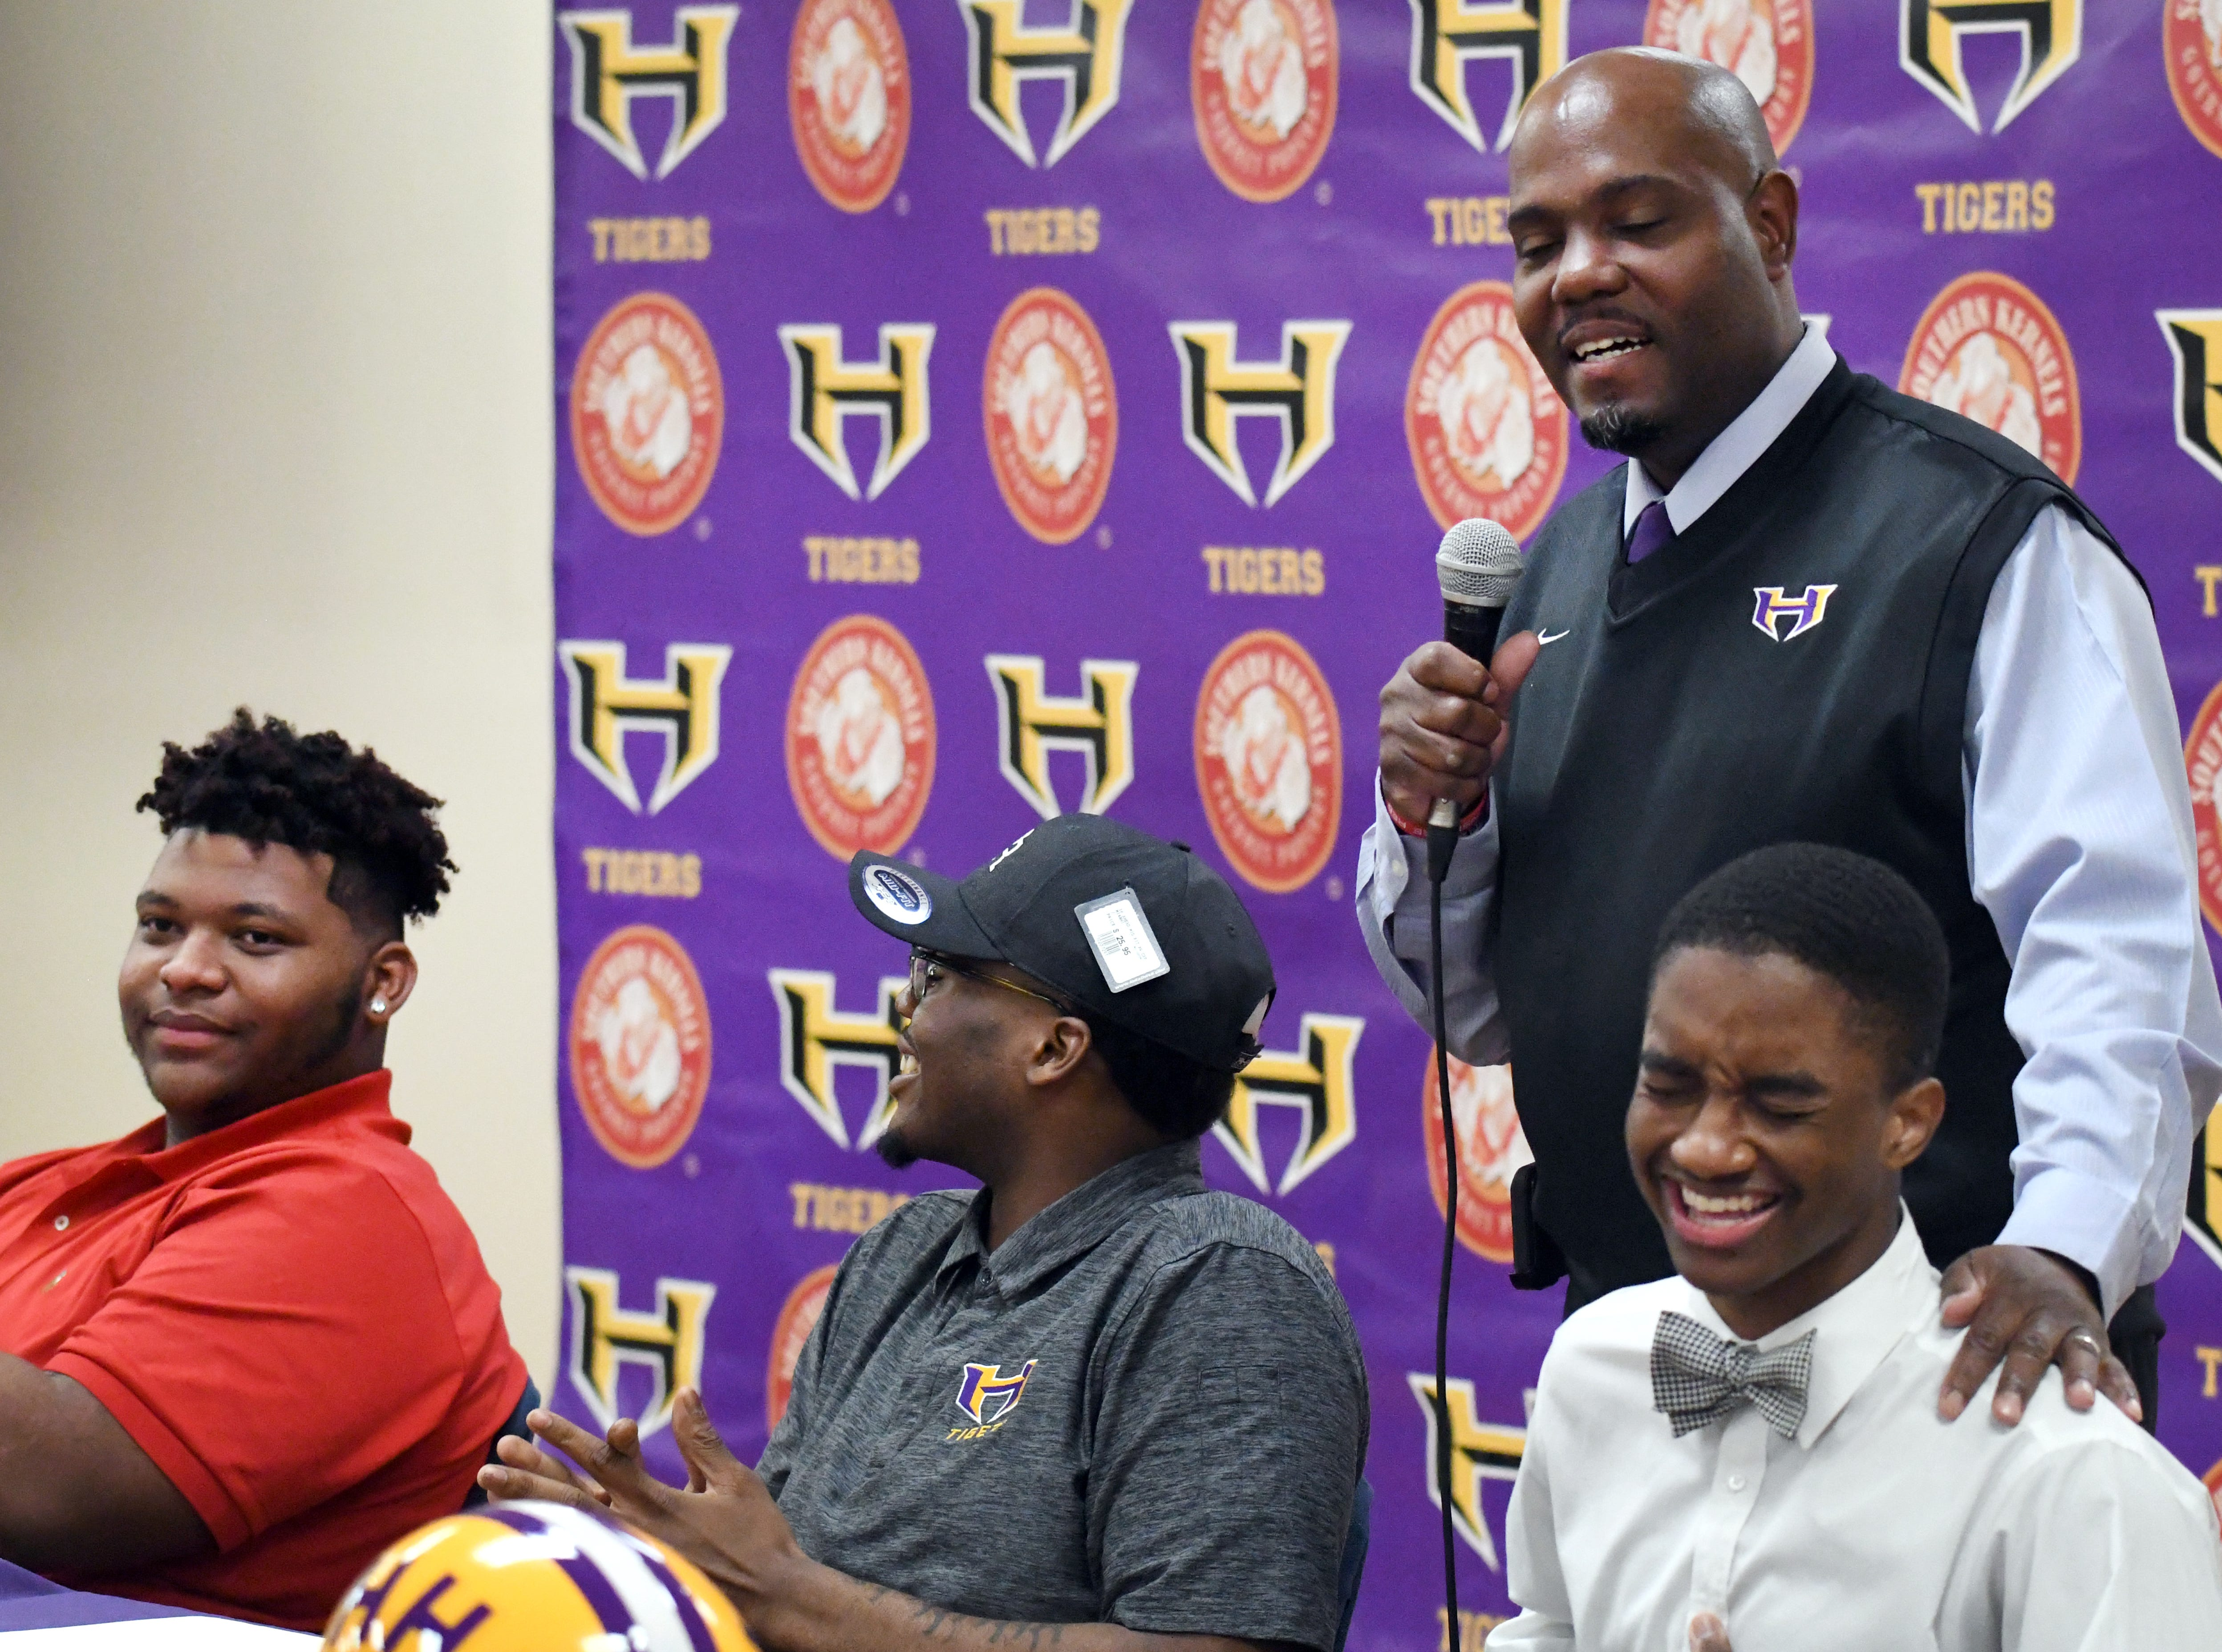 Hattiesburg High head coach Tony Vance congratulates his athletes during National Signing Day in Hattiesburg on Wednesday, February 6, 2019.